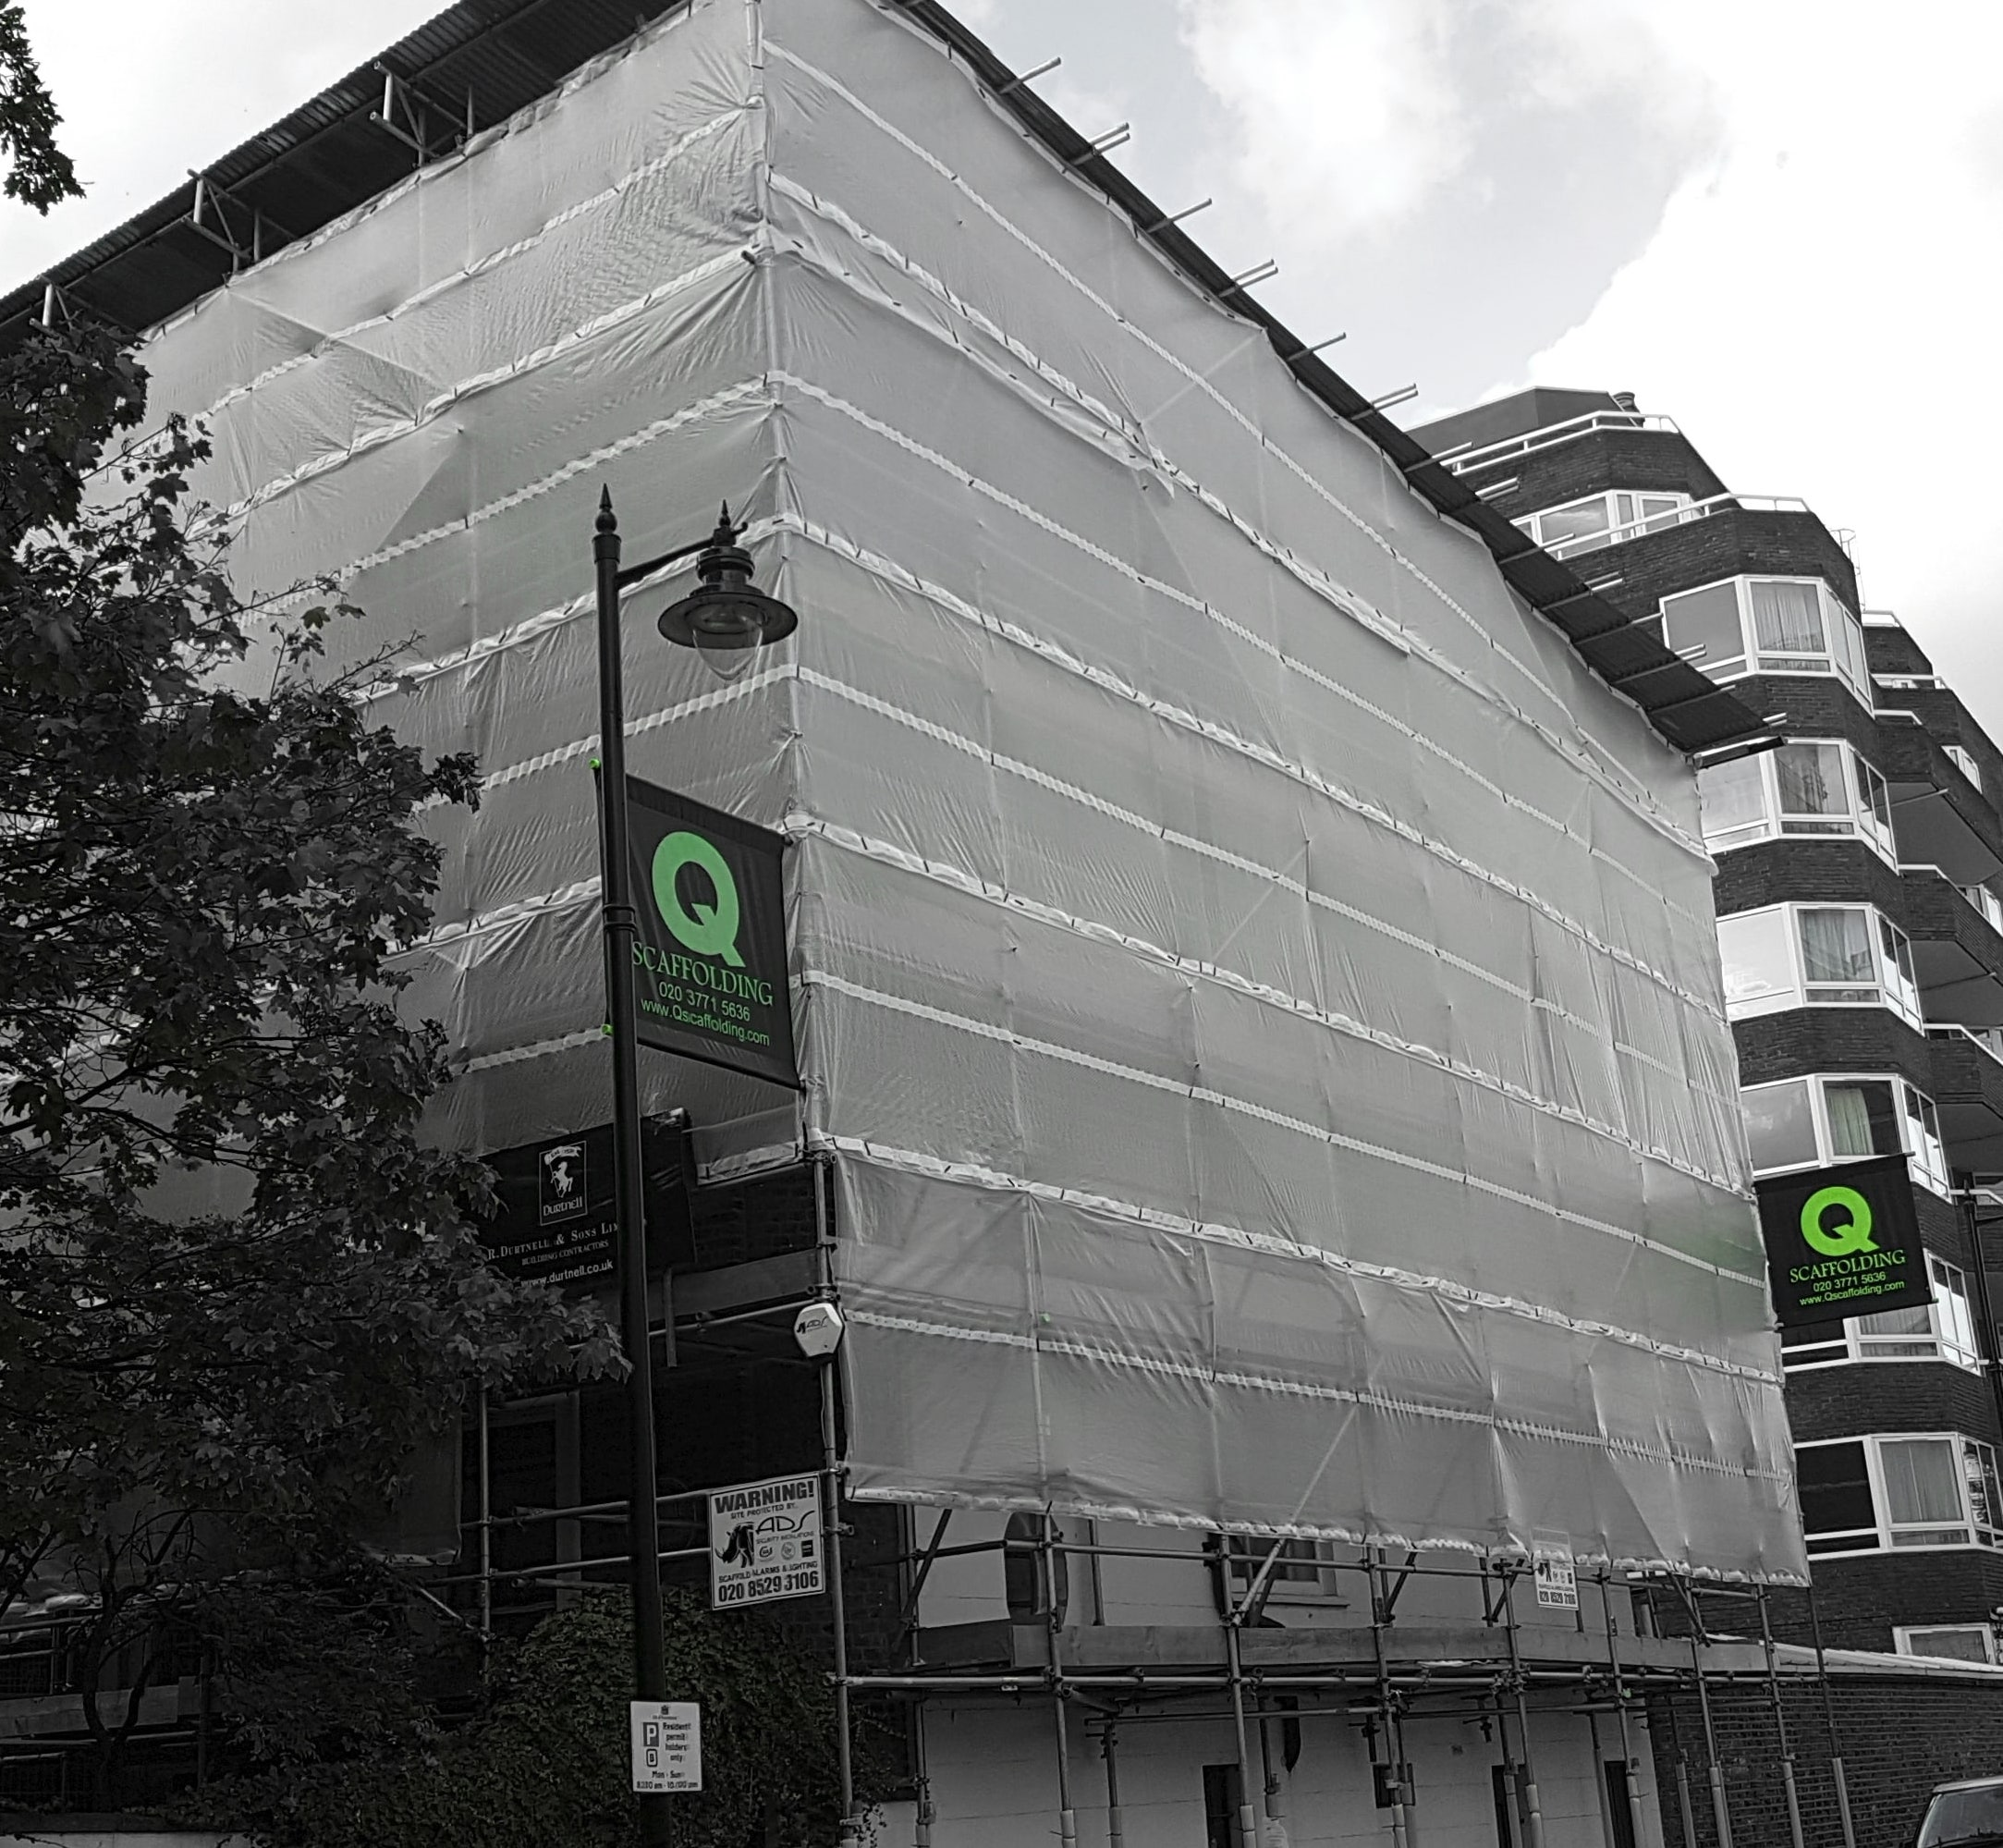 Scaffold inspections benefits